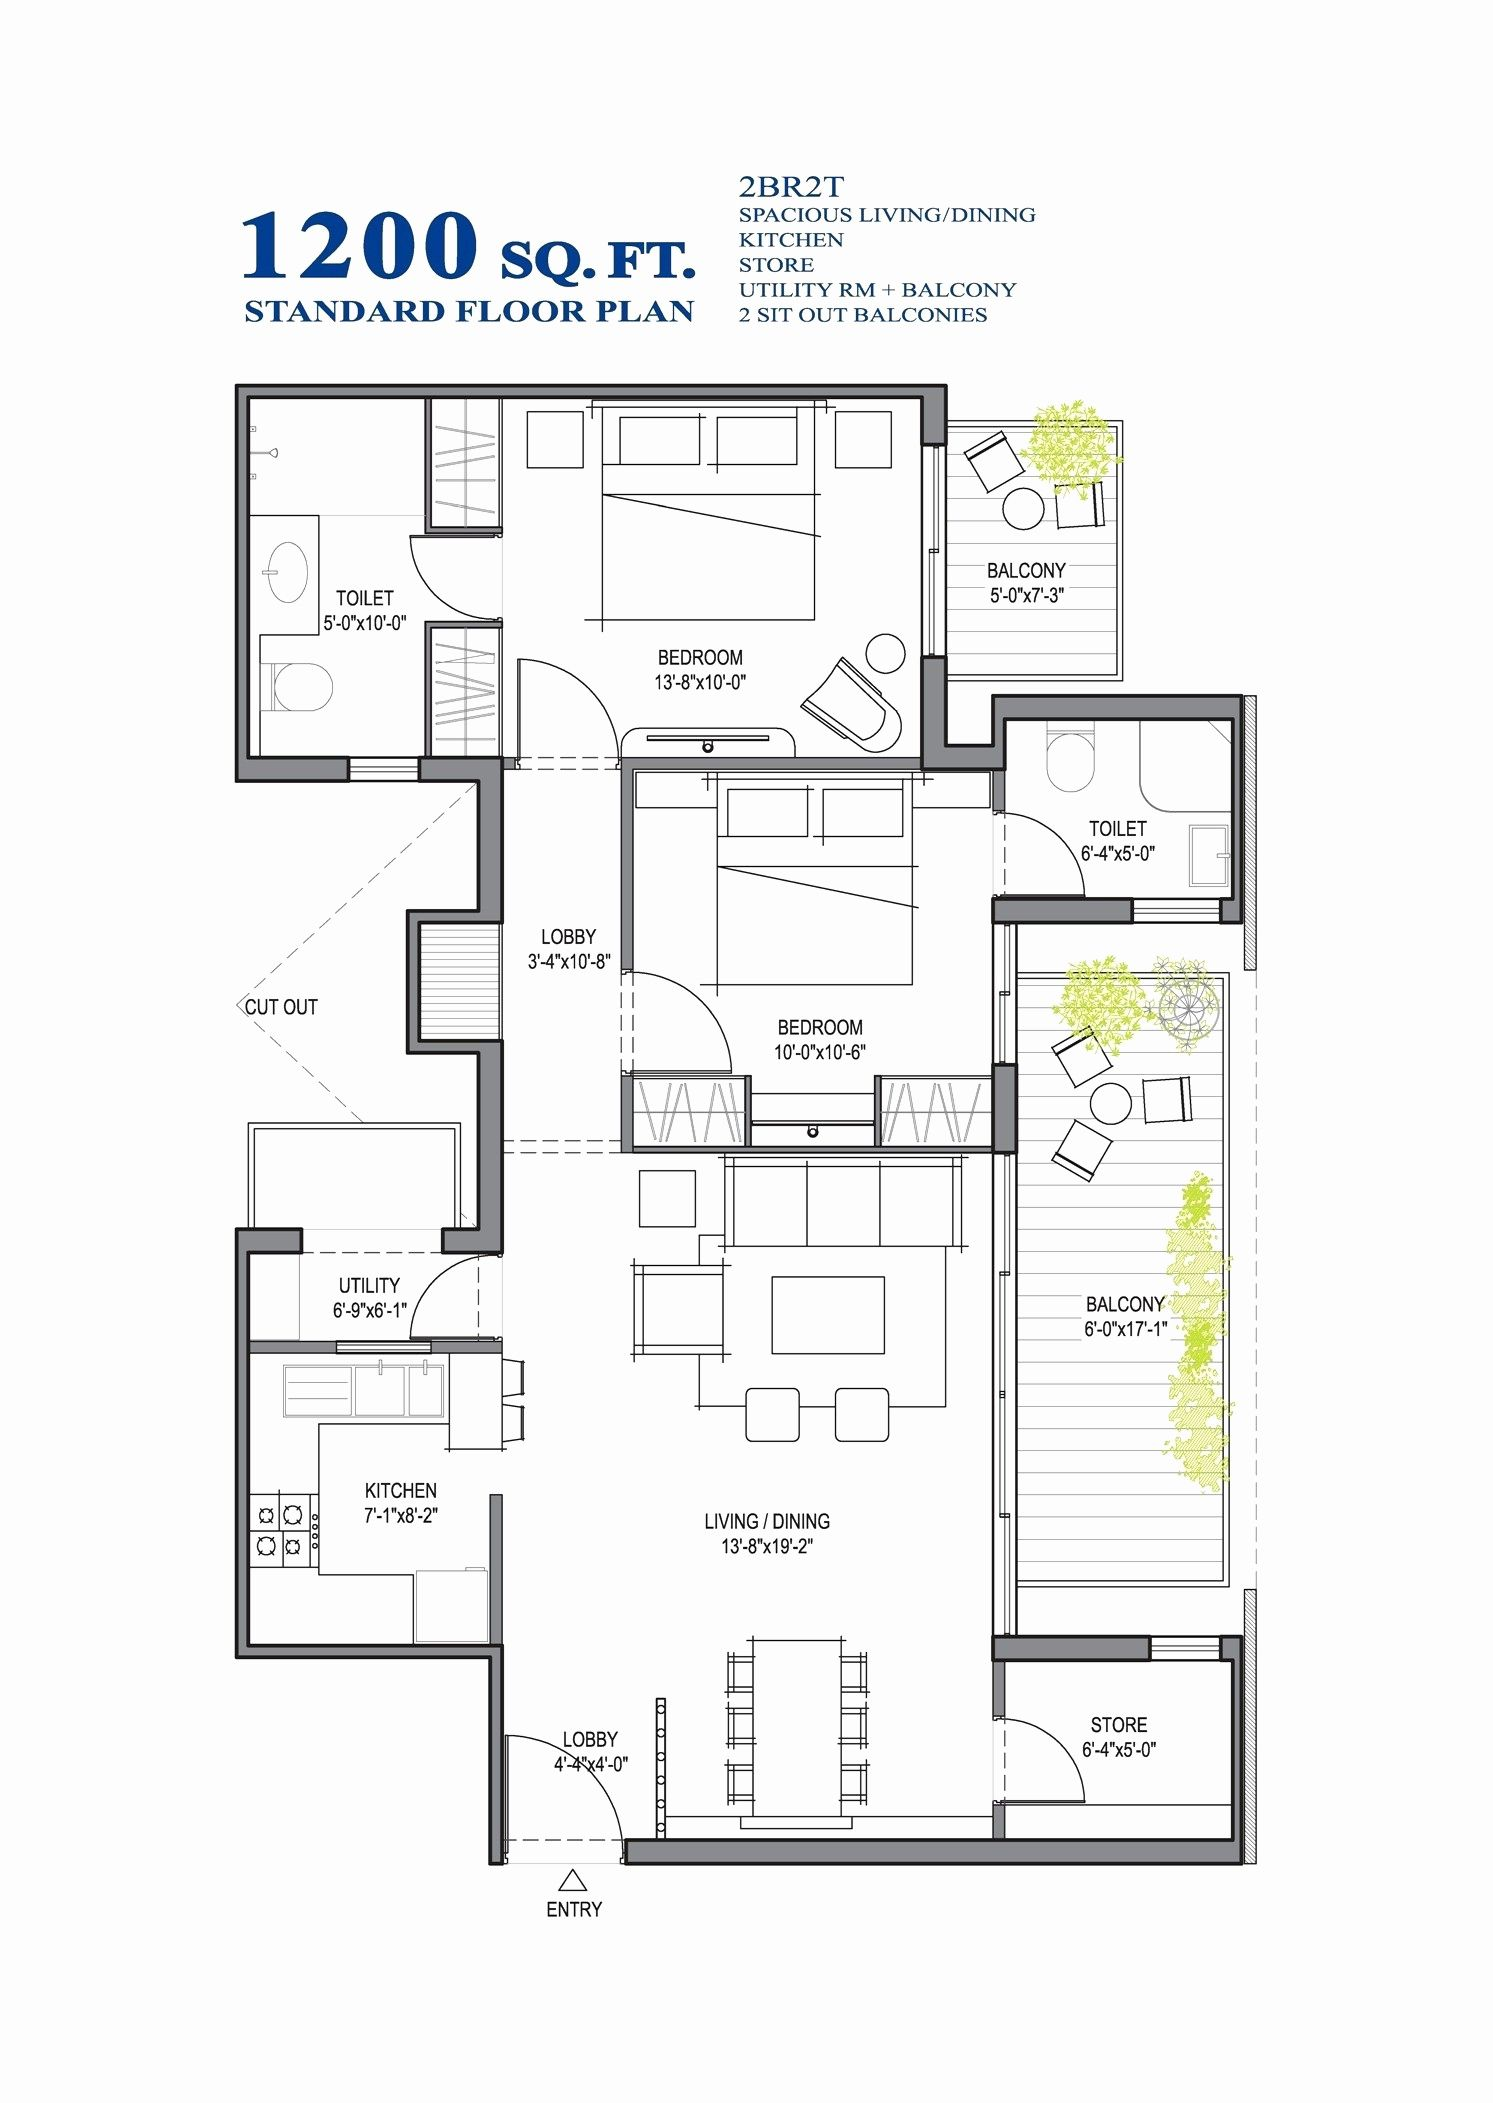 21 Beautifull Floor Plan 1000 Sq Ft Or Less That Will Make Kids Happy Indian House Plans Bungalow House Plans Basement House Plans